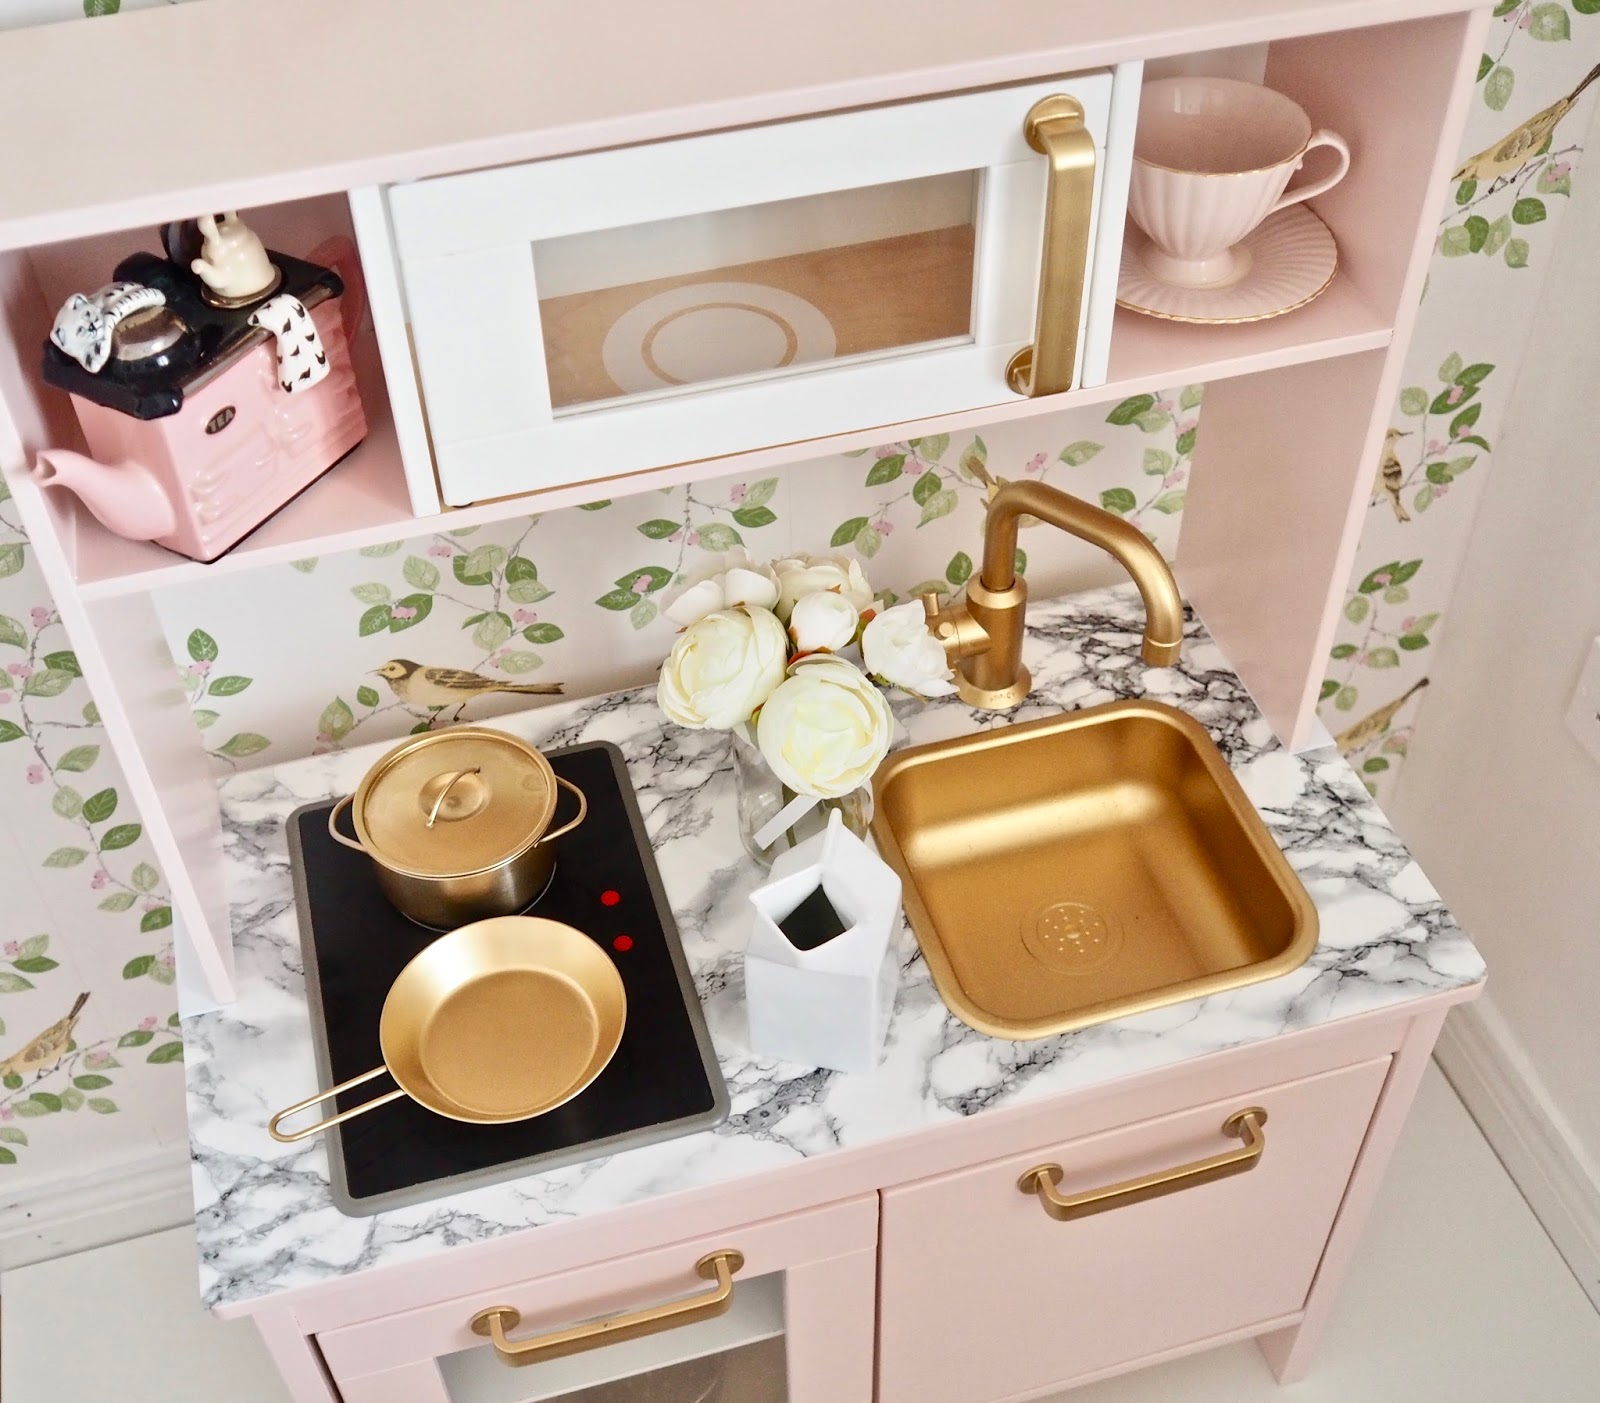 Ikea kids play kitchen makeover